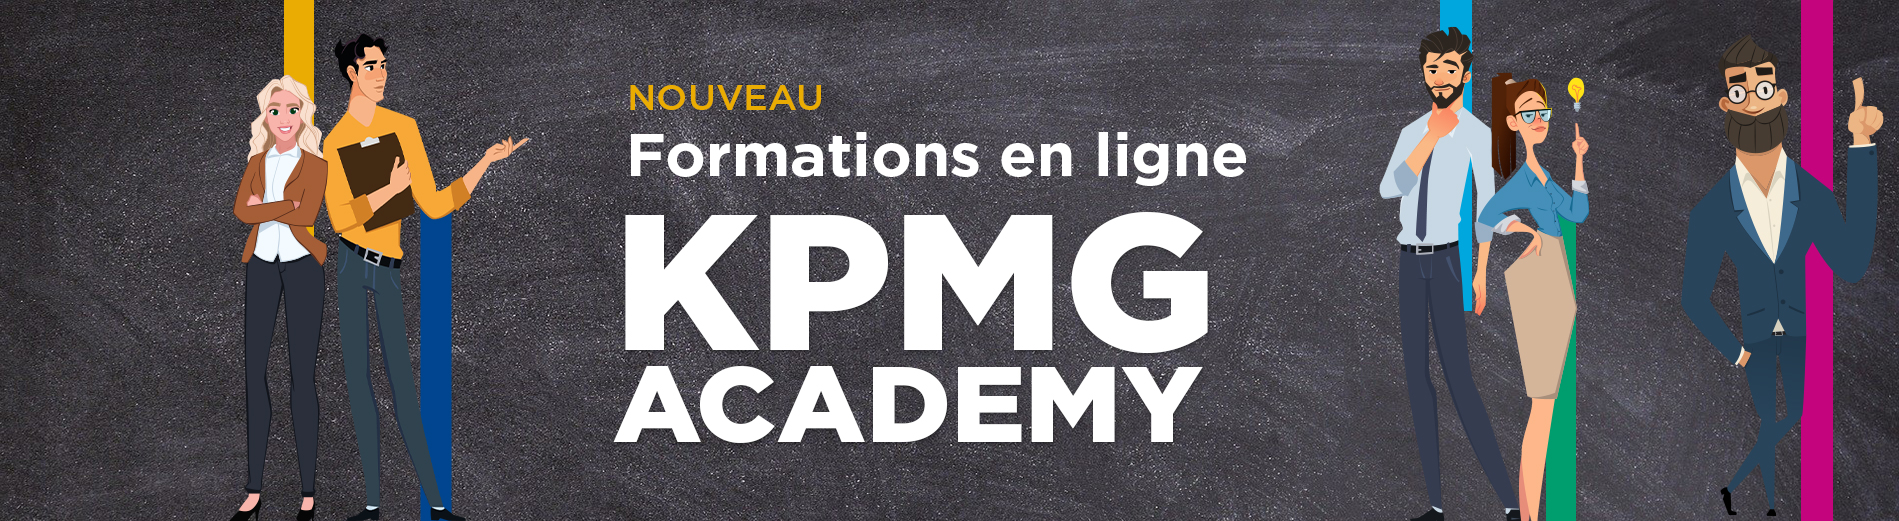 formations KPMG ACADEMY